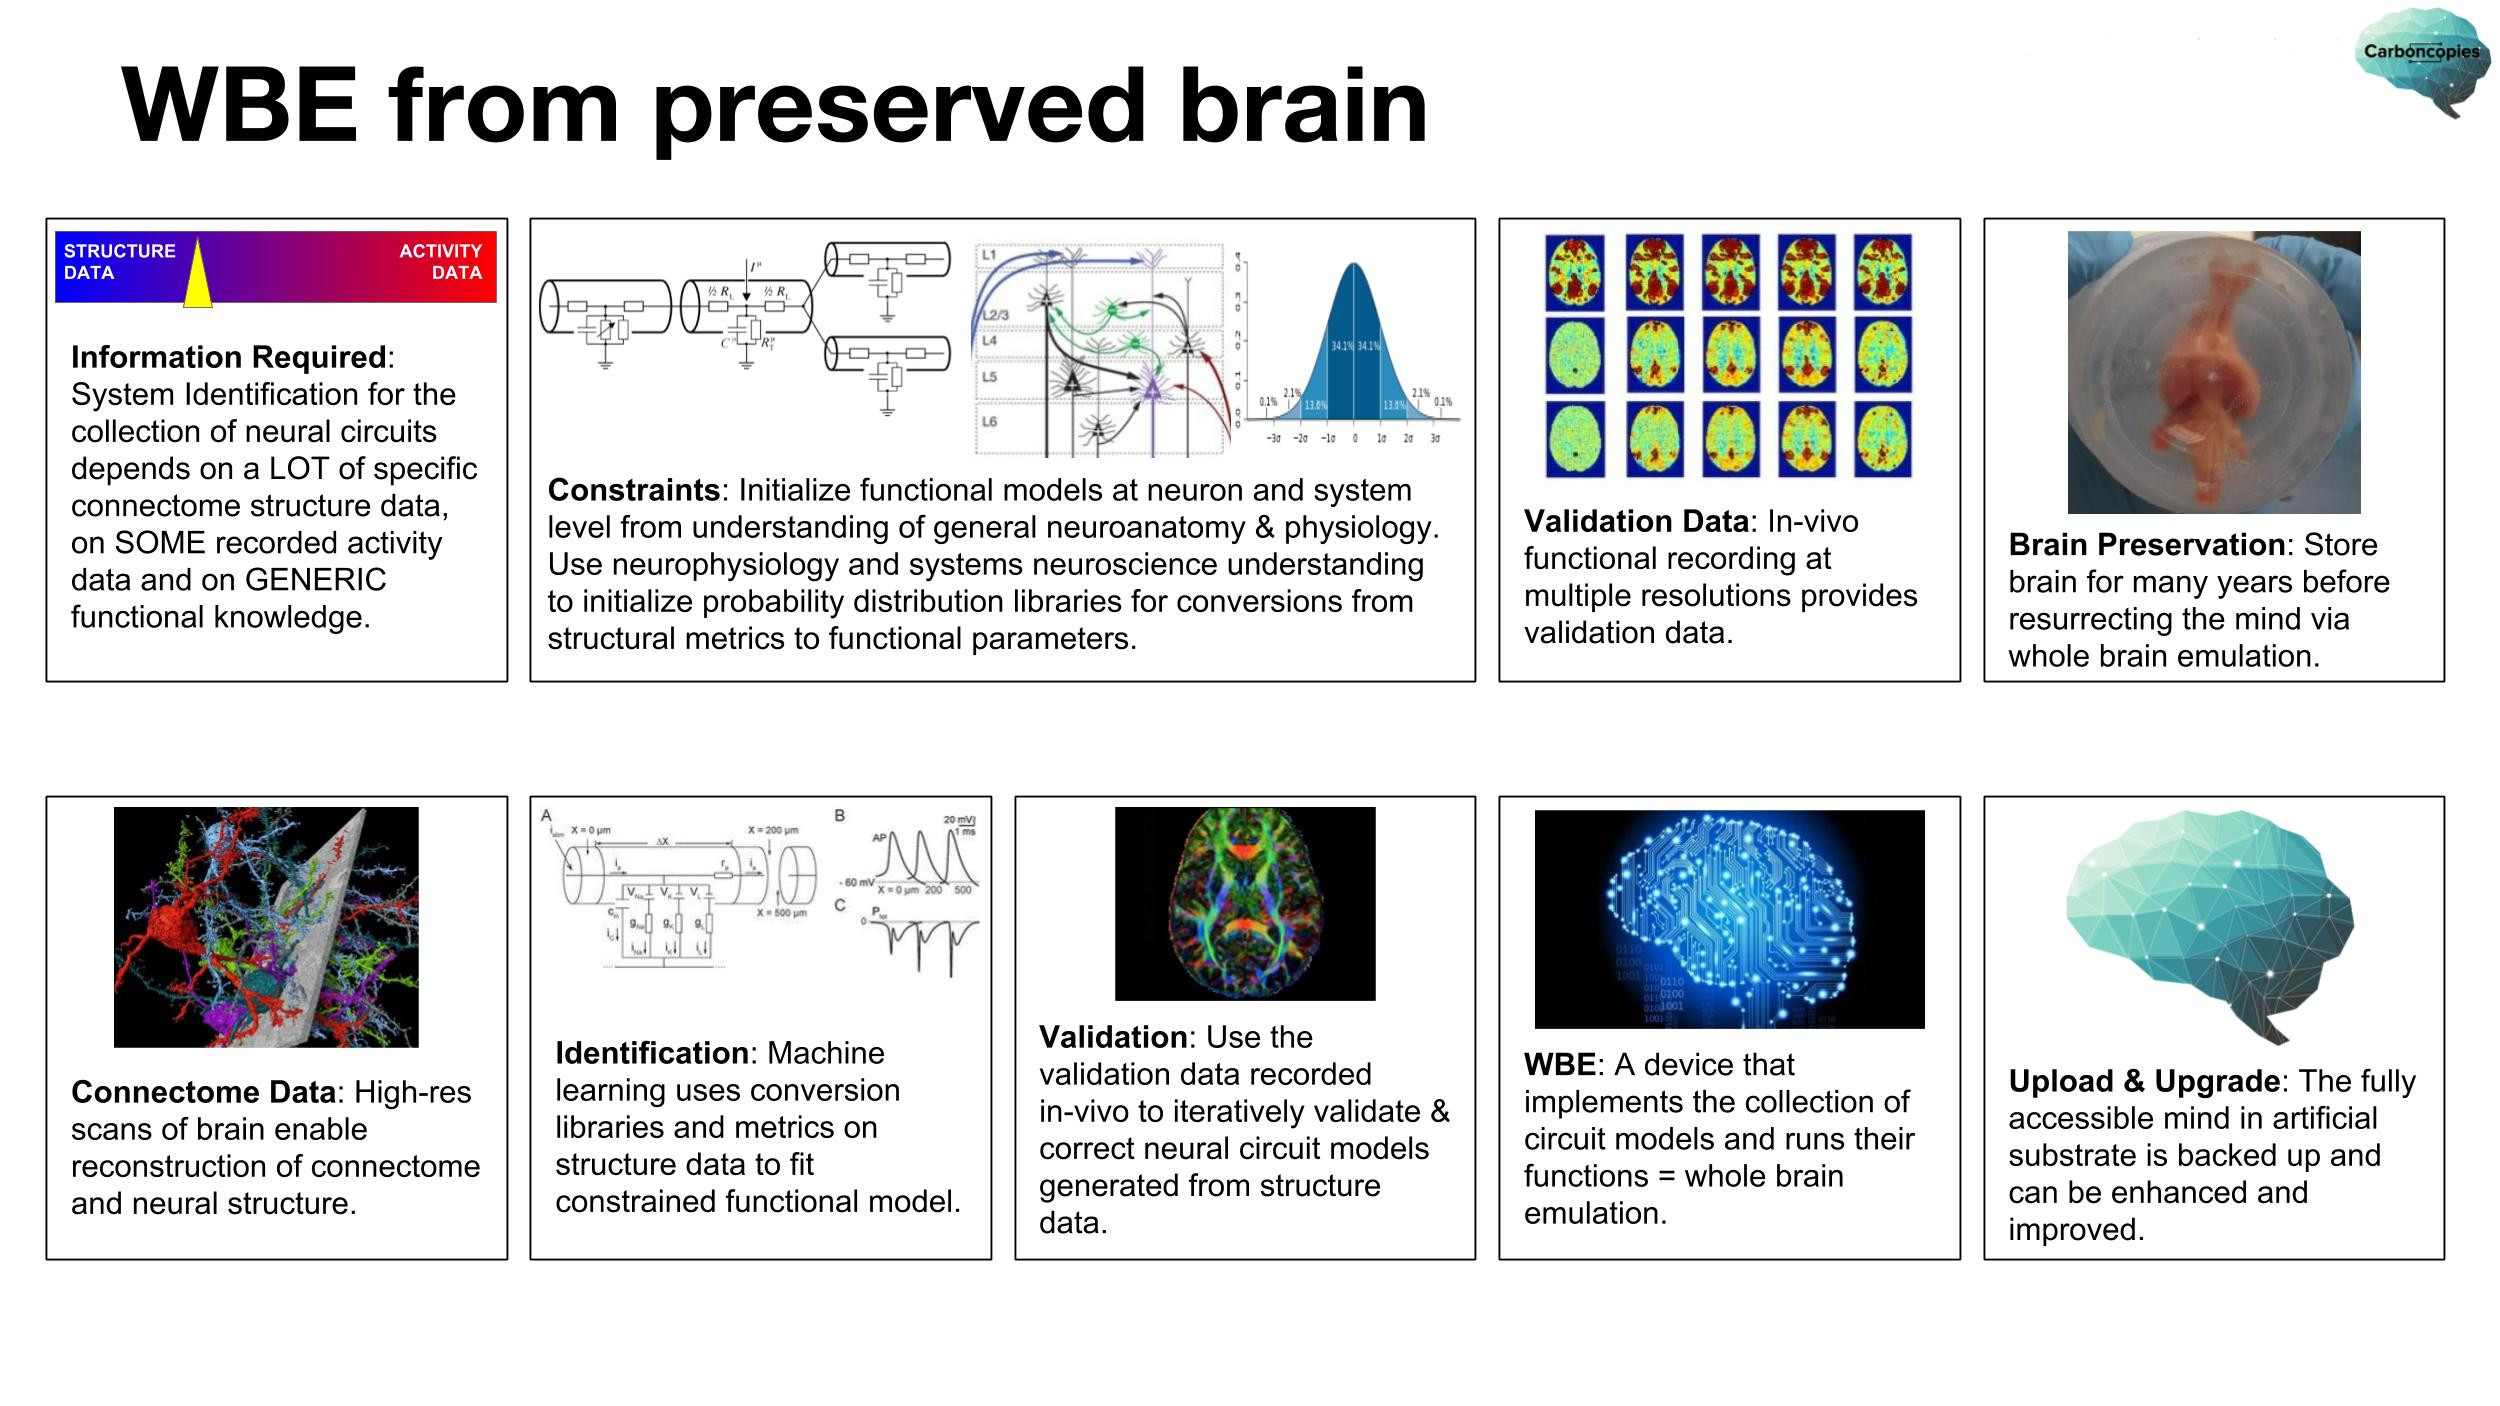 WBE-via-preserved-brain-20180407-2500x1406